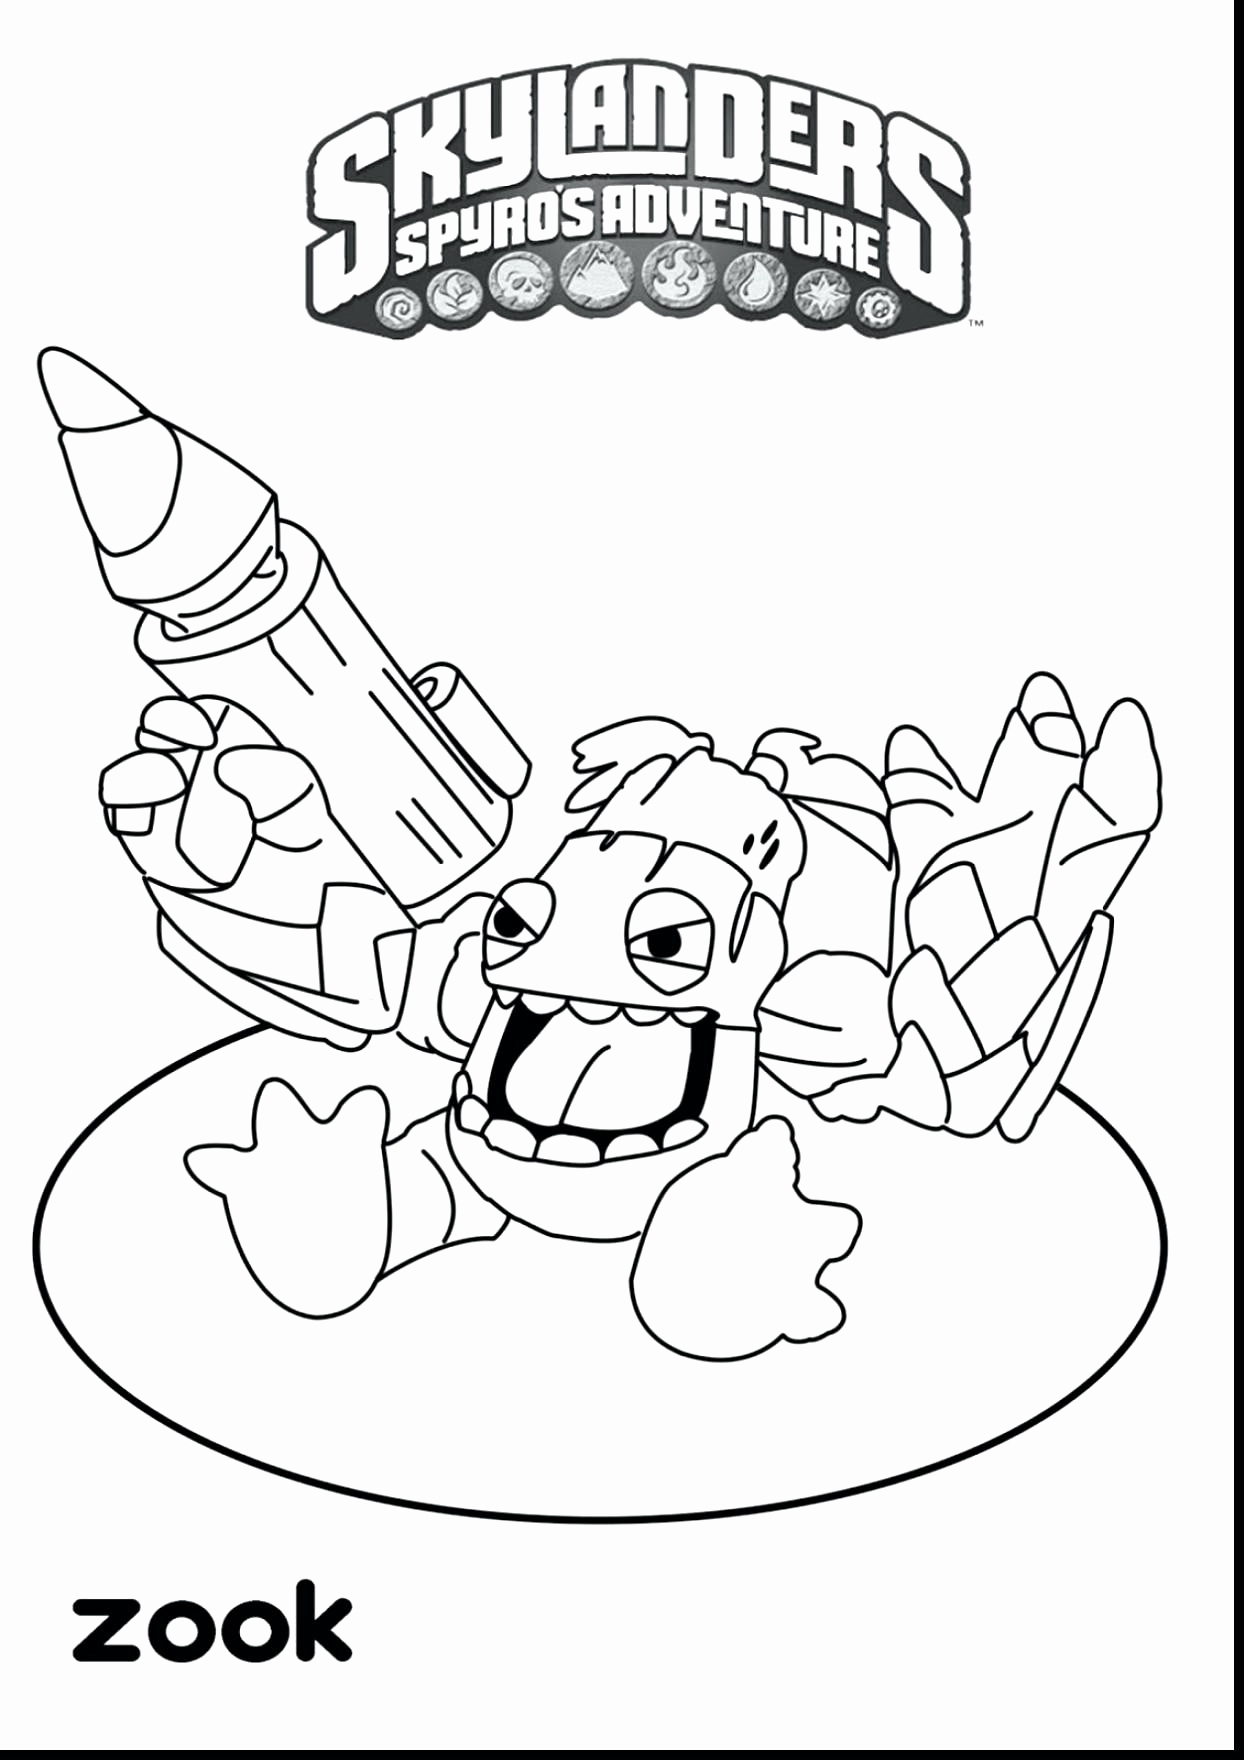 Donkey Ollie Coloring Pages  to Print 15j - To print for your project